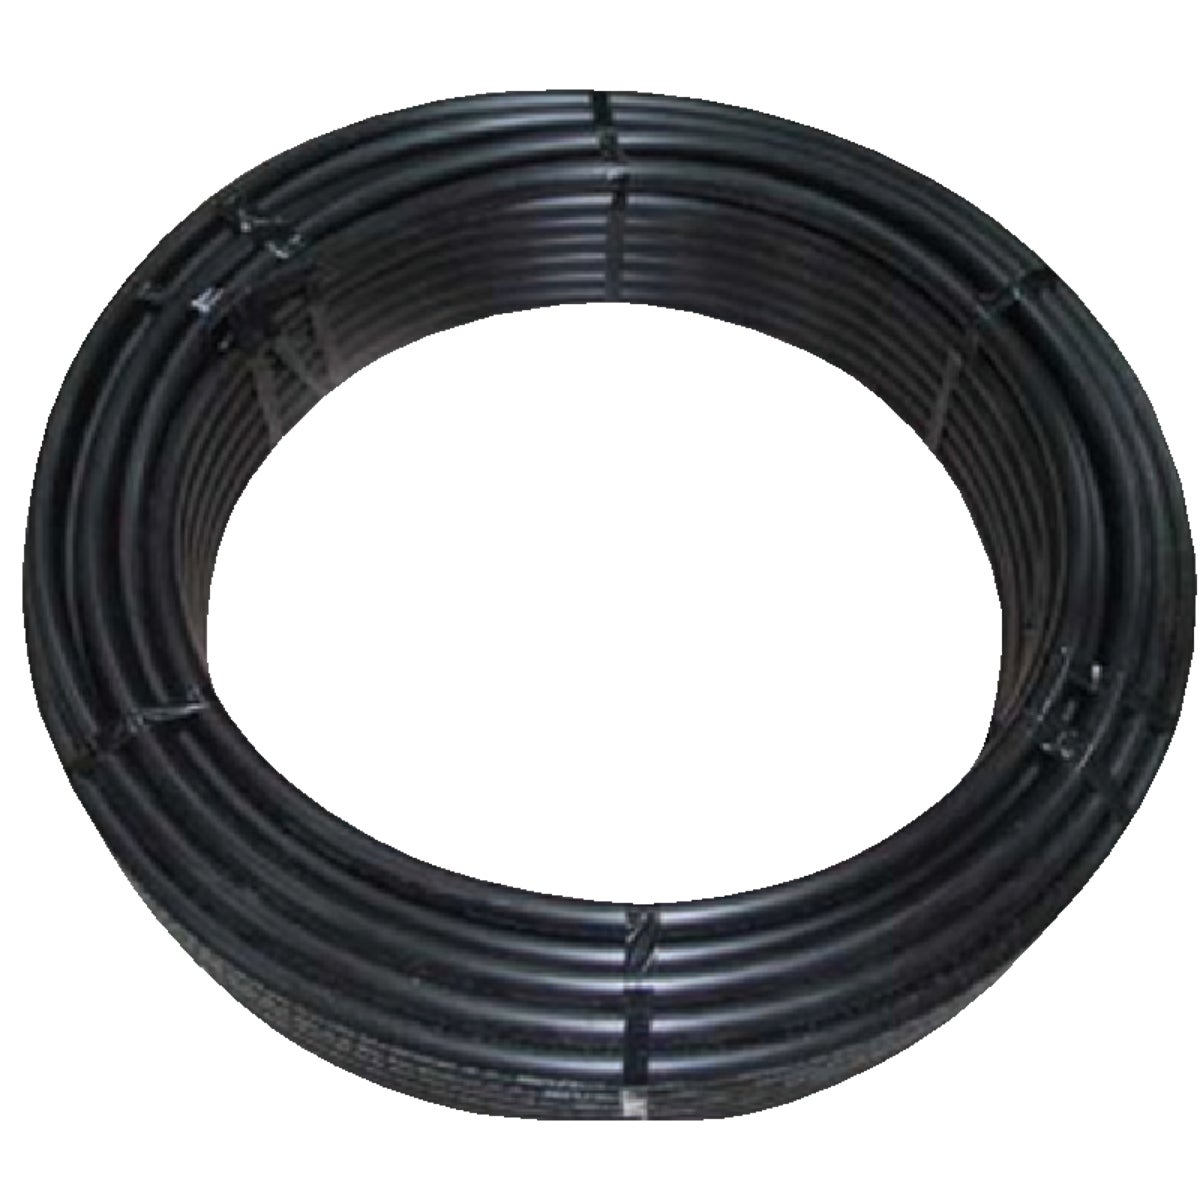 "1-1/2""X100' HD100 PIPE - 18375 by Cresline Plastic Co"